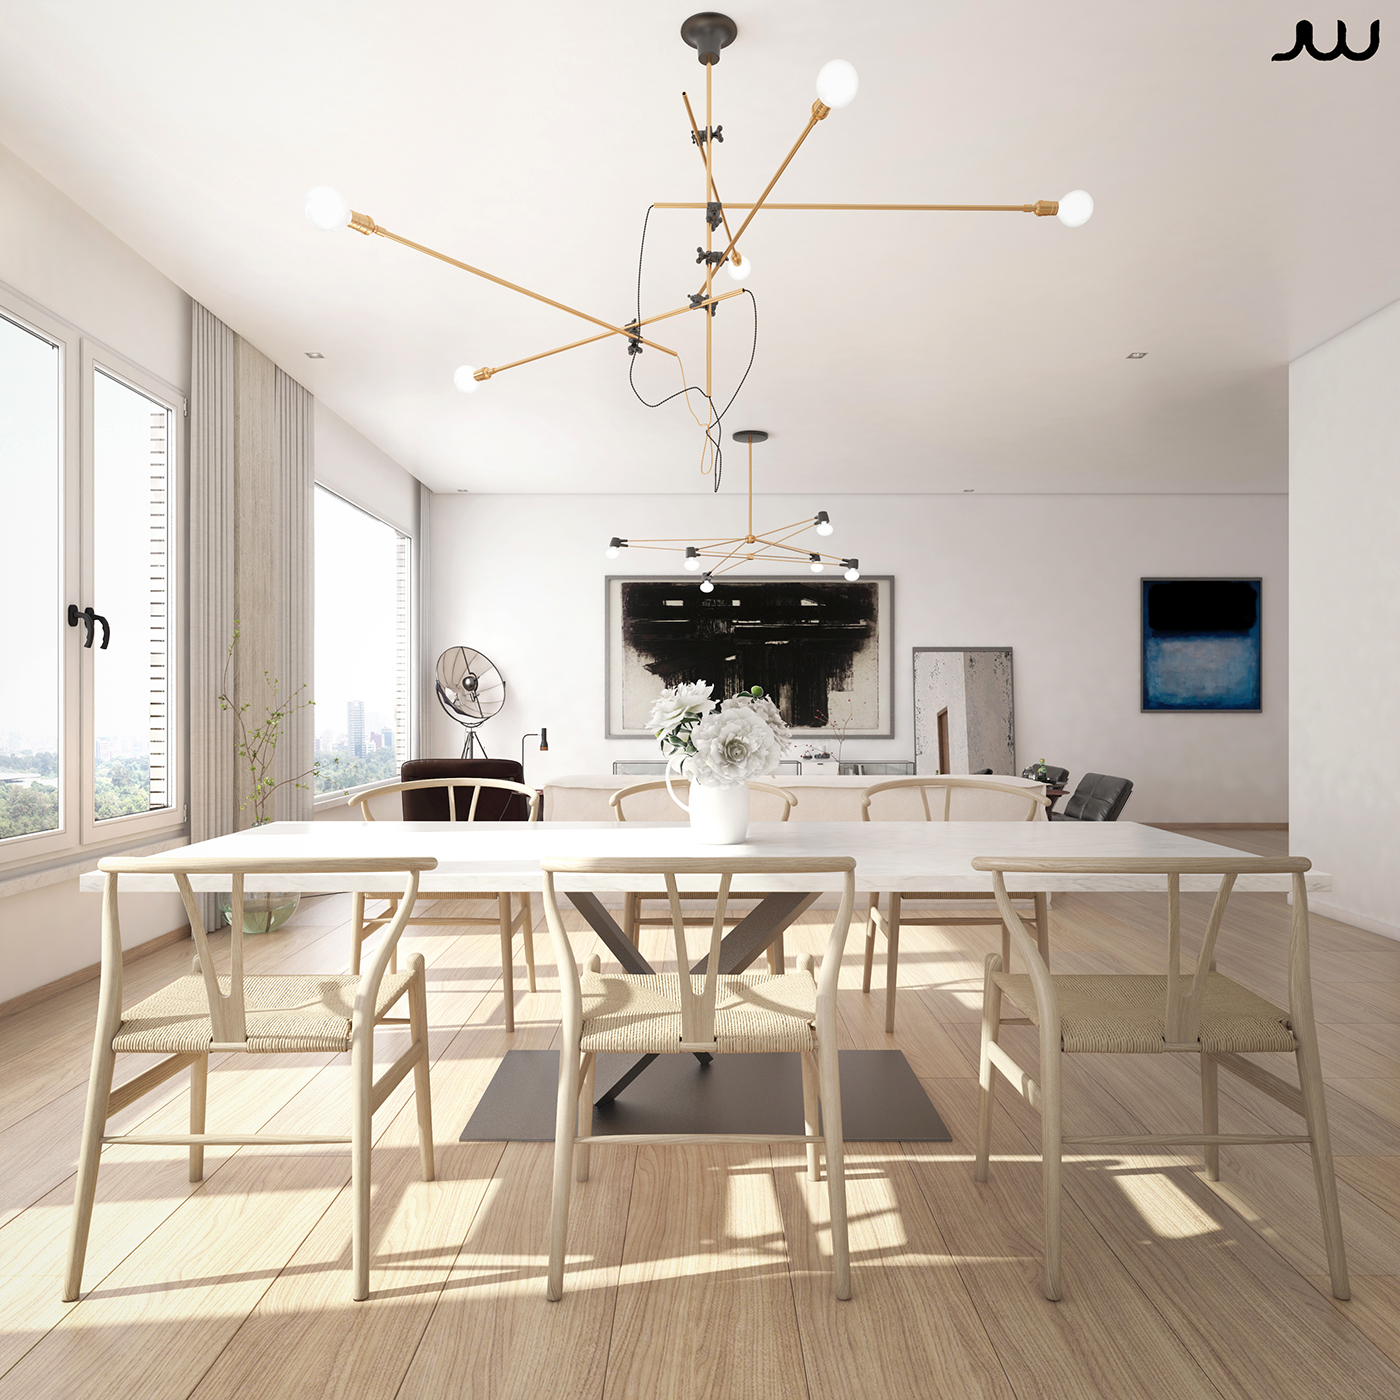 Central park view new york apartment cgi on behance for Maison de luxe interieur